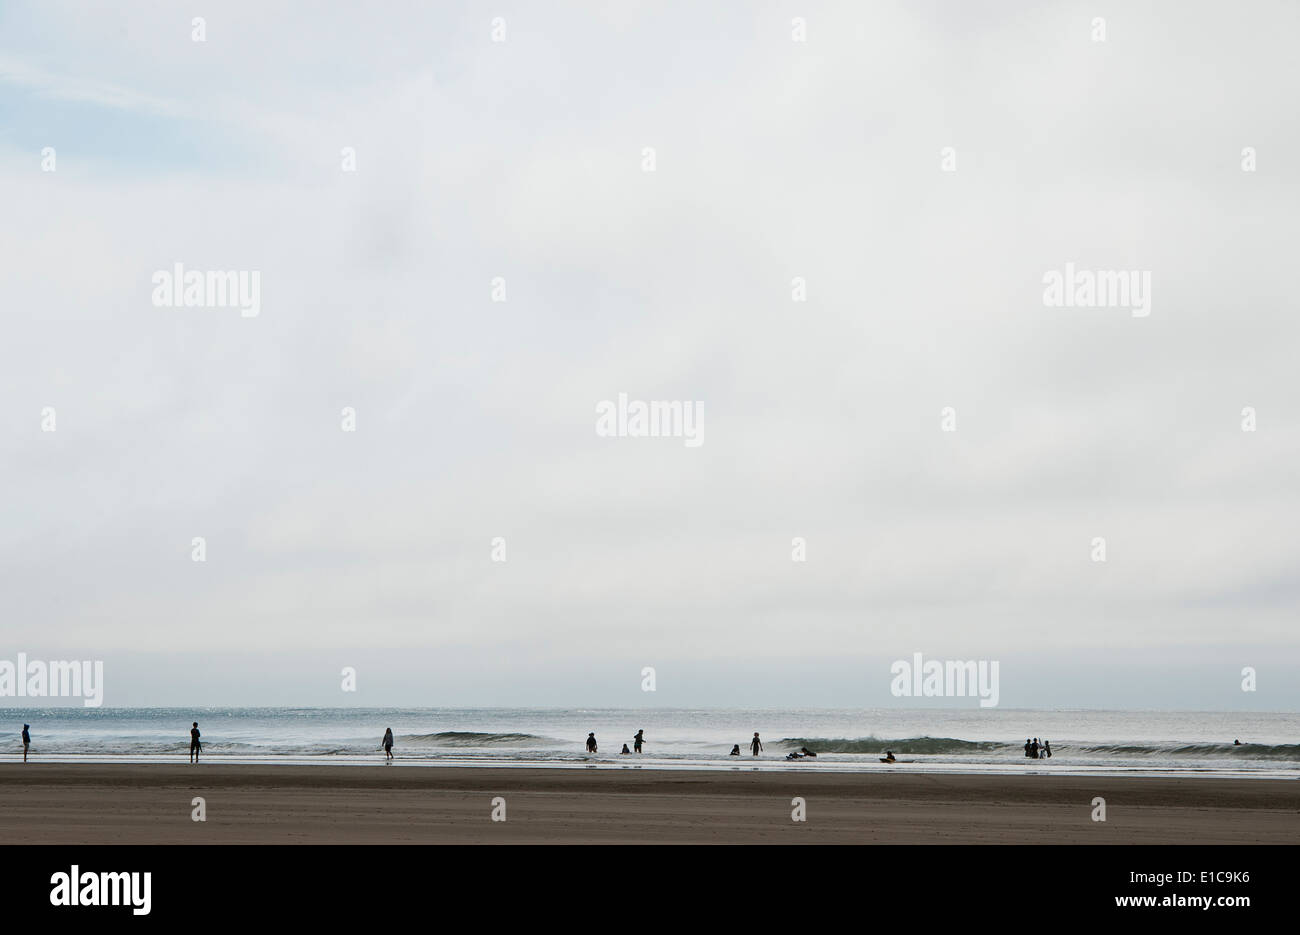 People in silhouette hanging out at Short Sand Beach, Oregon. - Stock Image